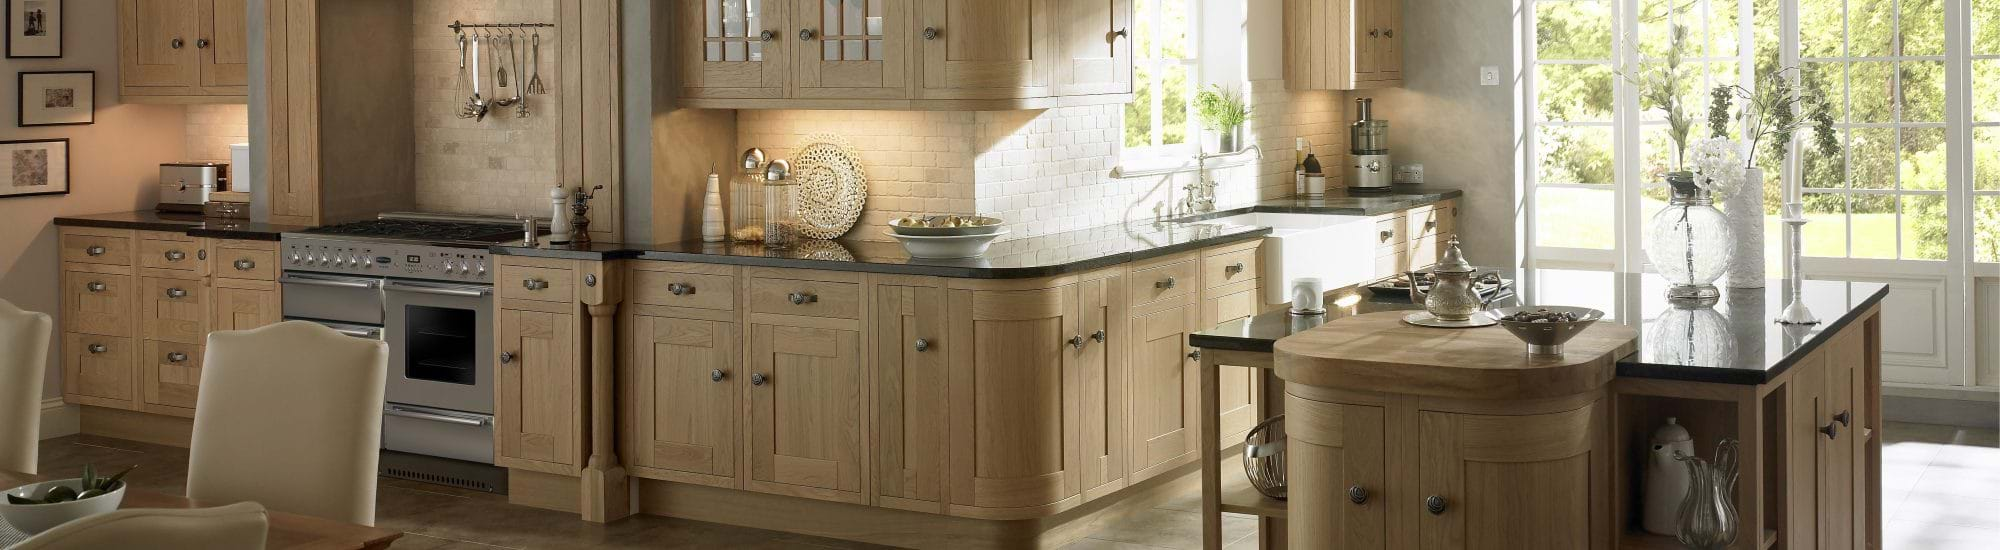 Wood Effect Kitchens